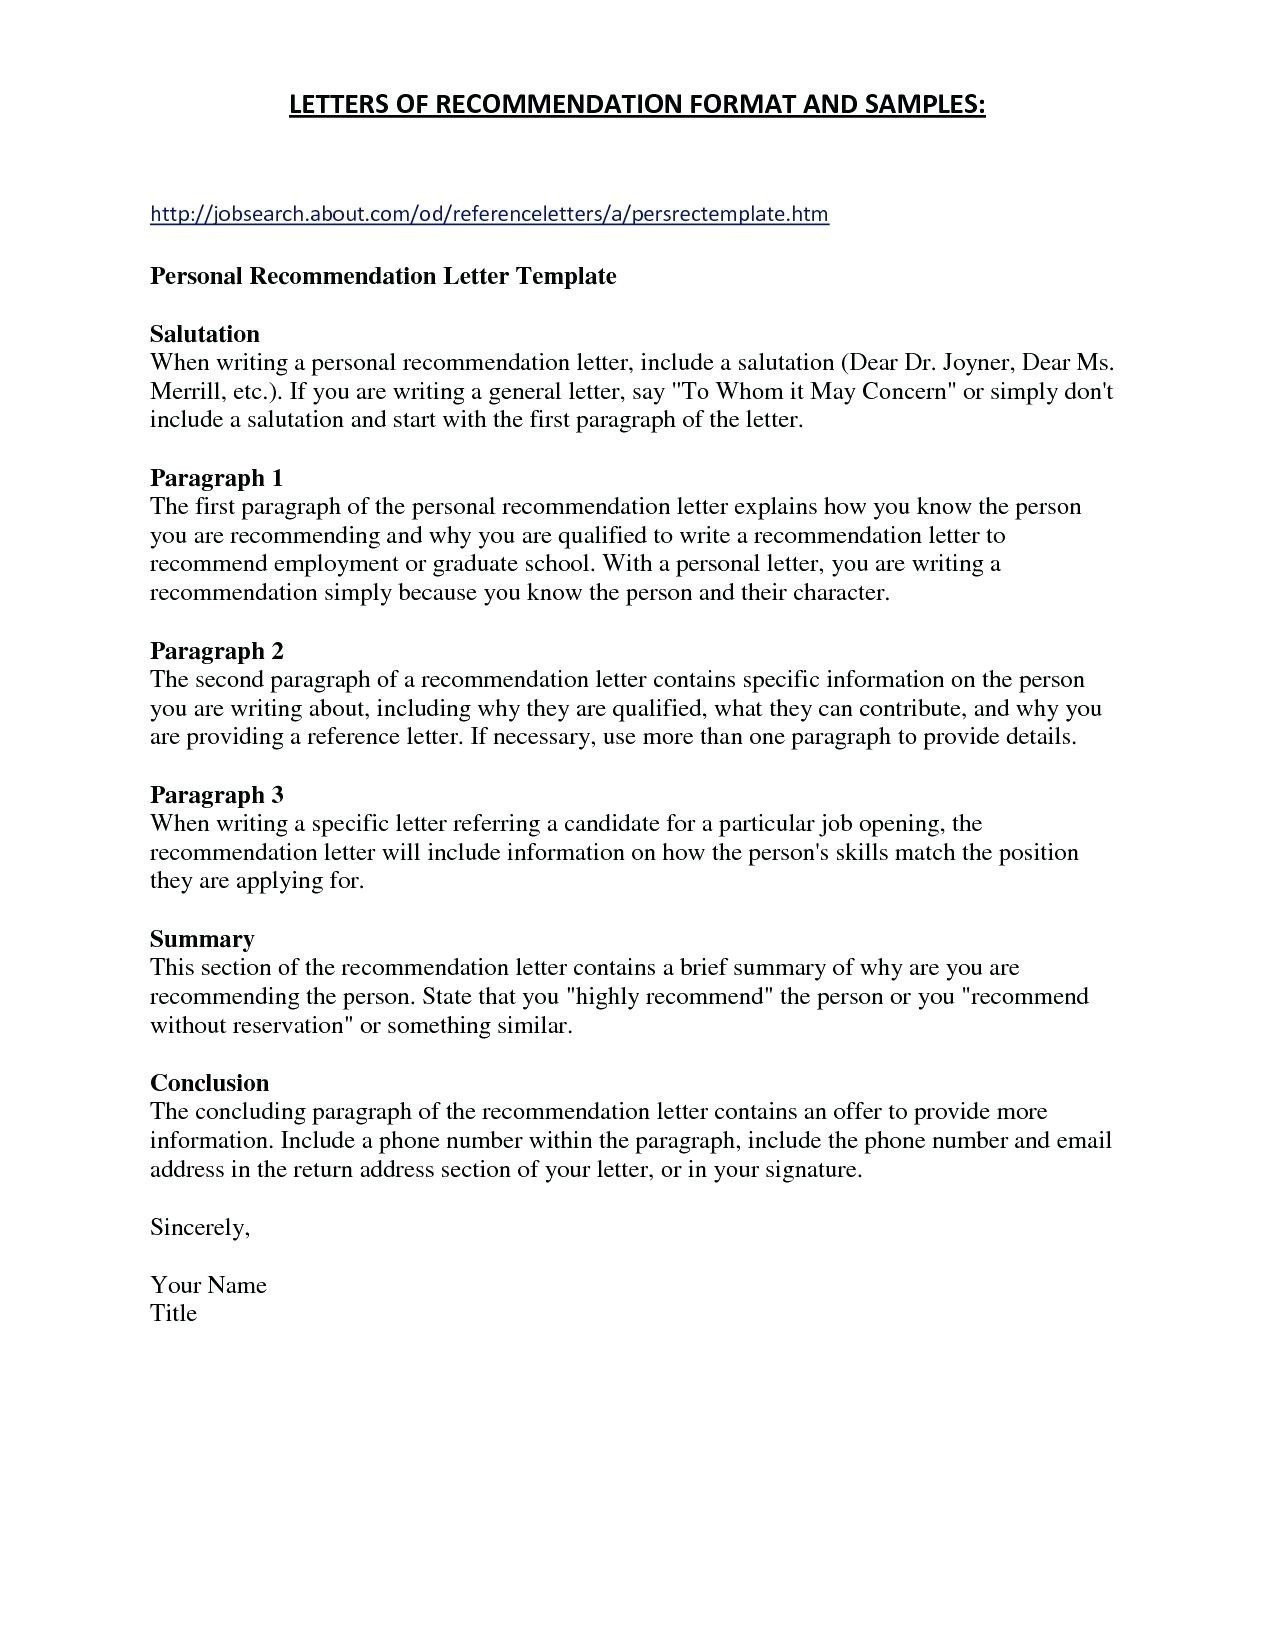 Reference Request Letter Template - New Sample Reference Letter for A Job